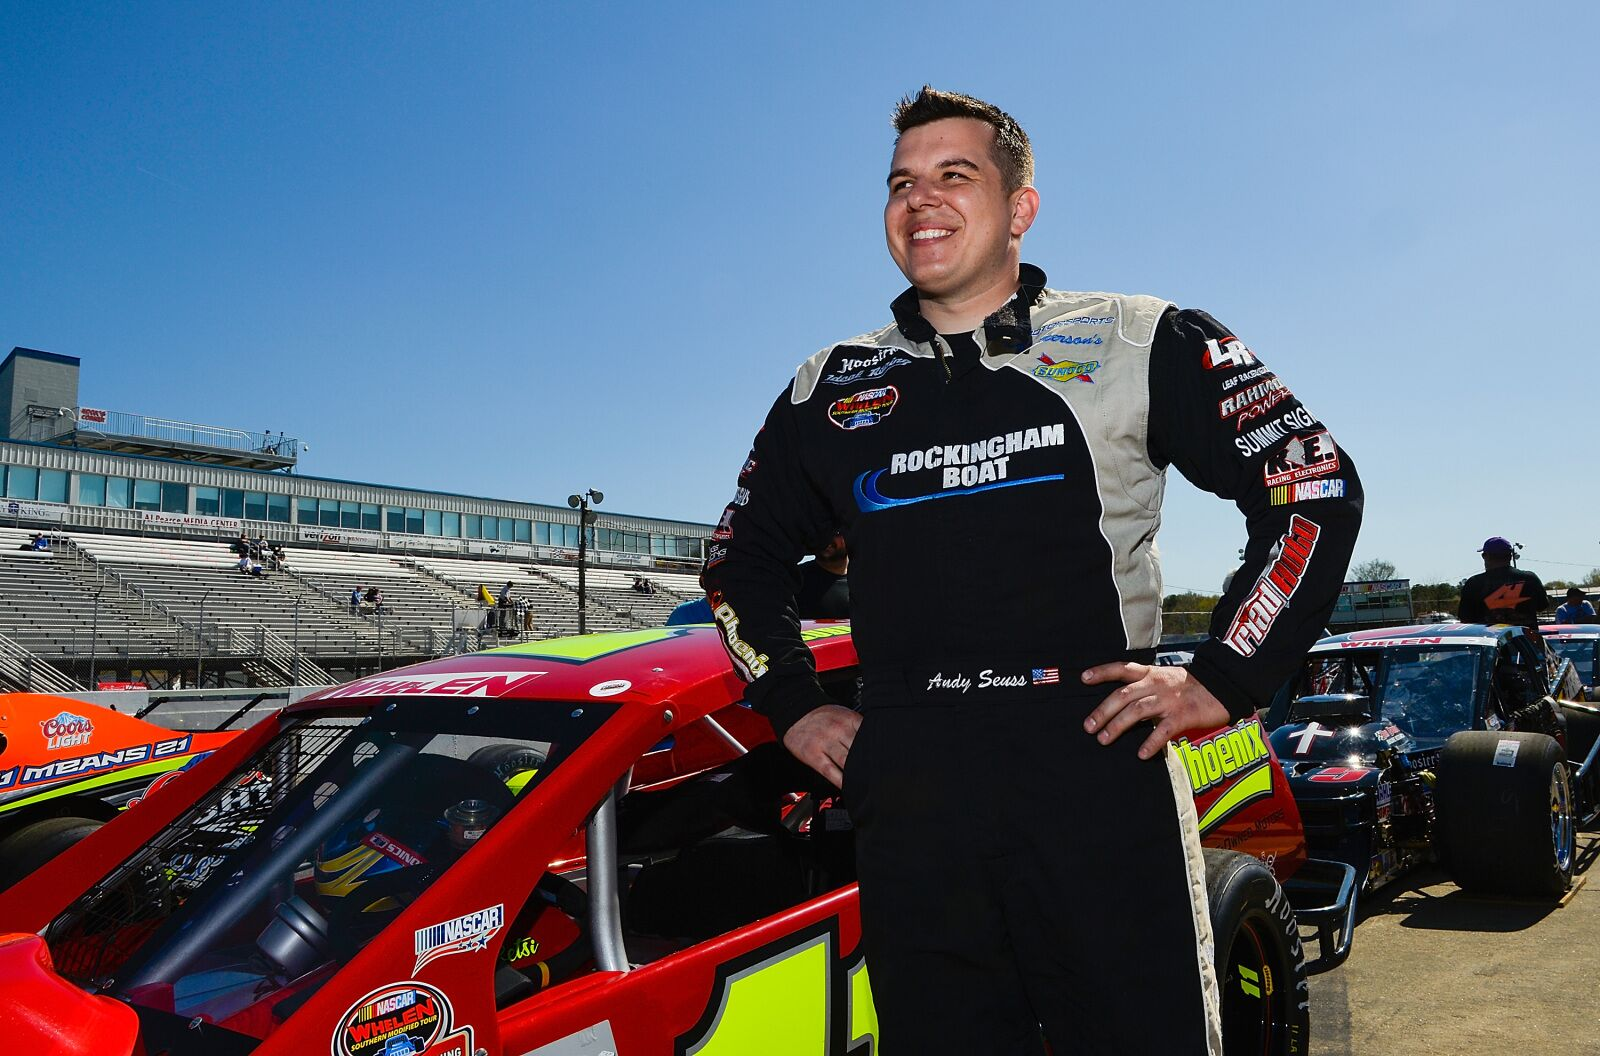 NASCAR: Andy Seuss to make Cup Series debut at New Hampshire